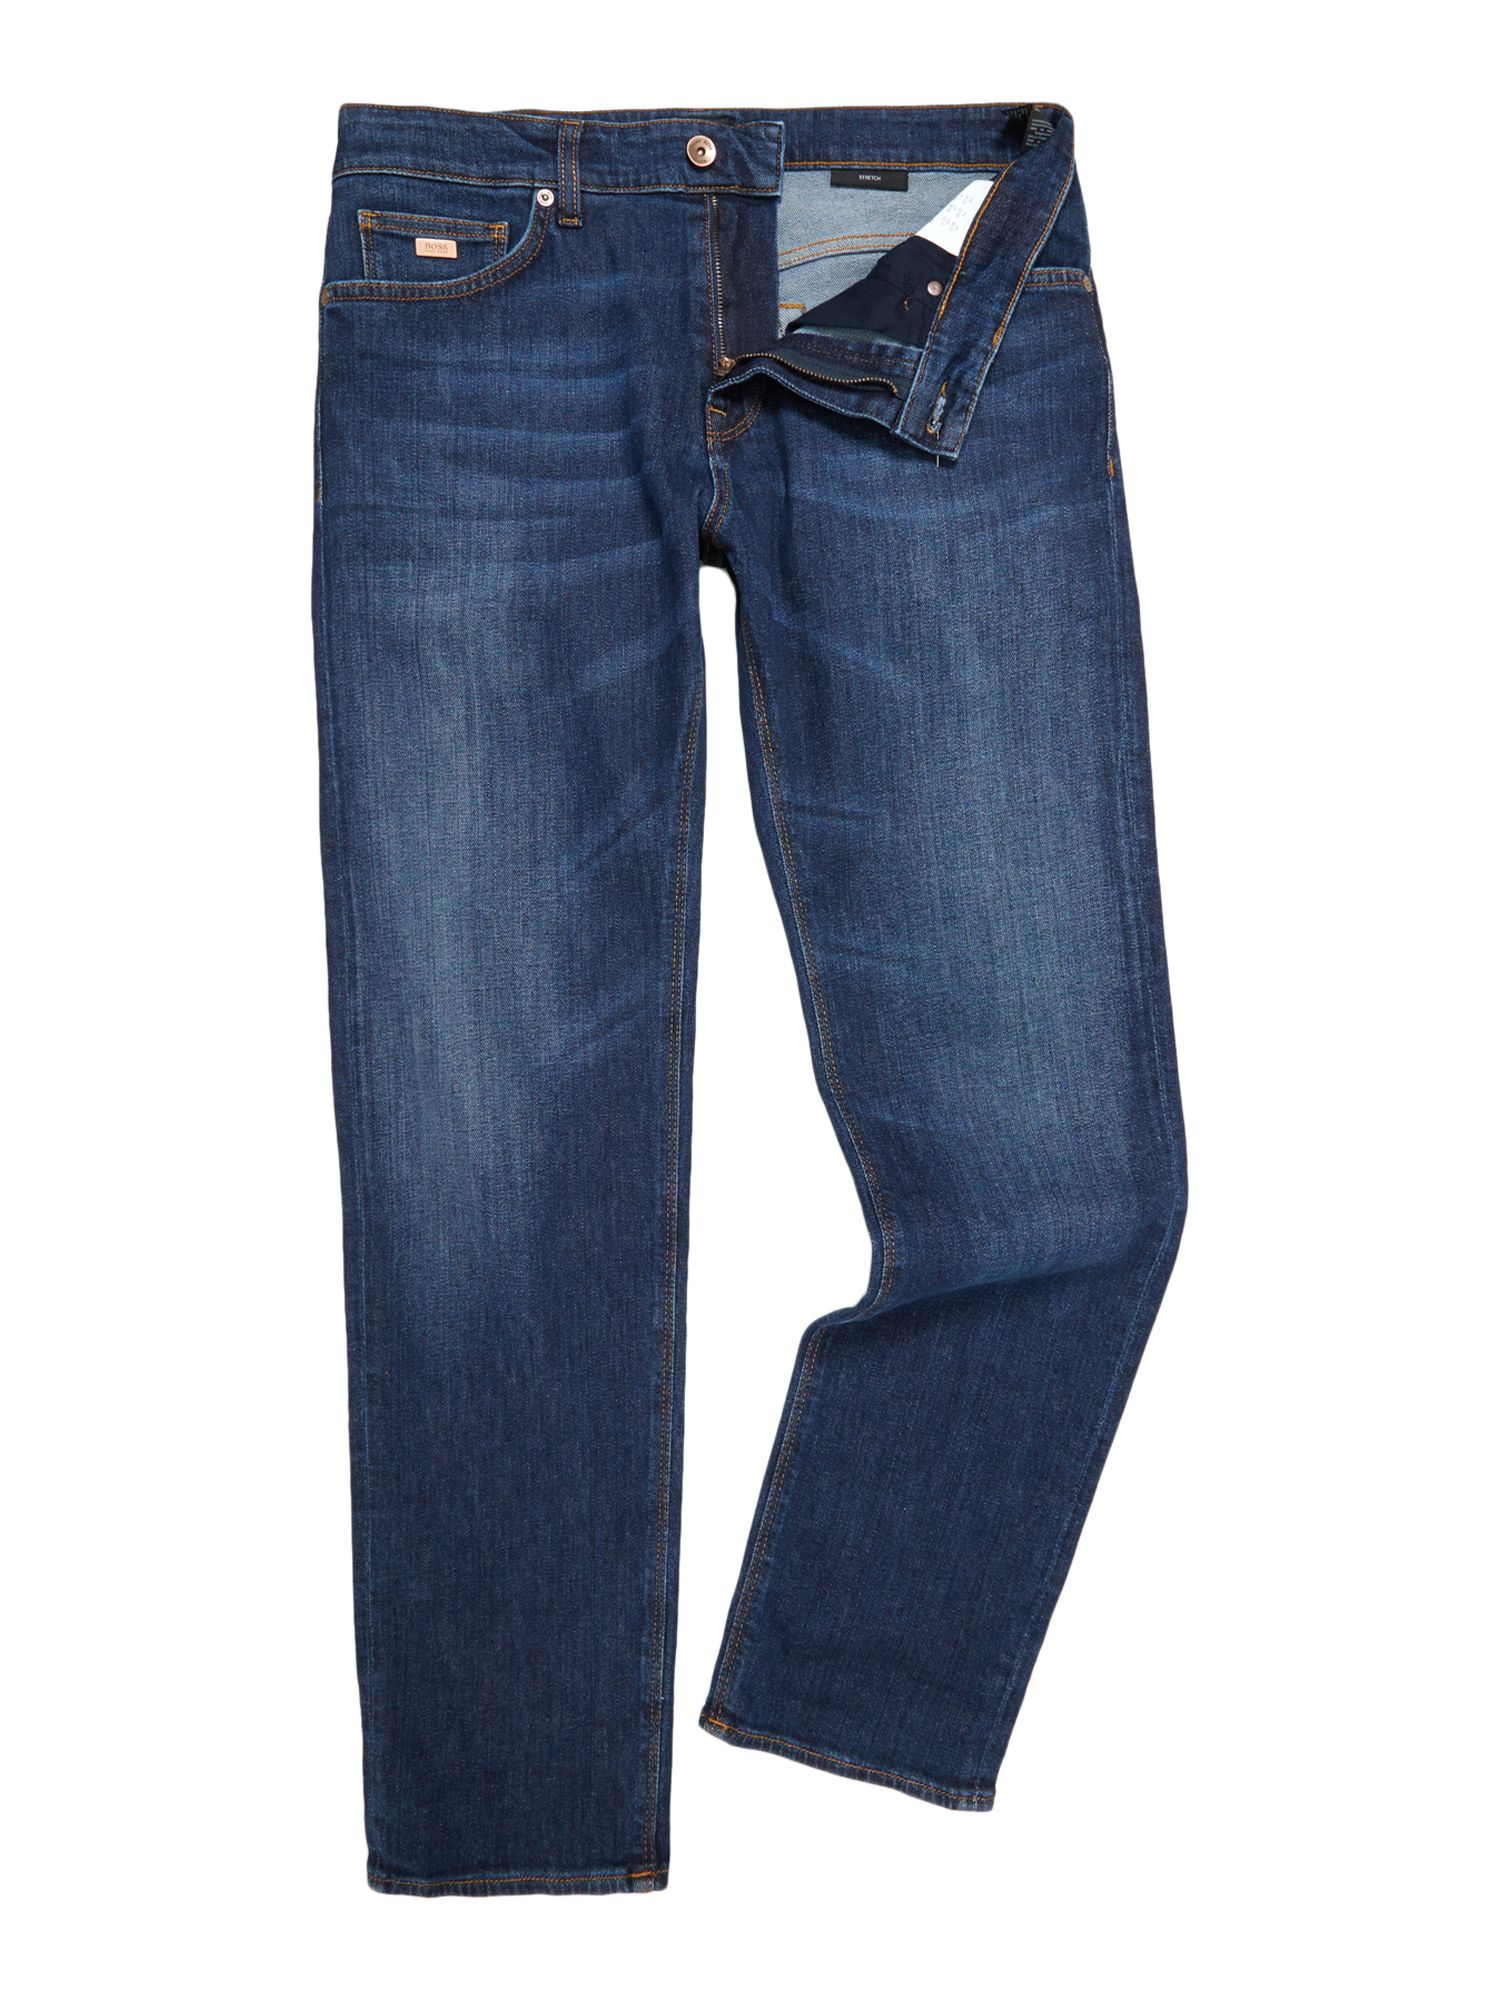 Regular Straight Fit Jeans - Mid Blue Worn In GANT Outlet 2018 New Best Place 100% Guaranteed Cheap Online ZTjOhf9eXx